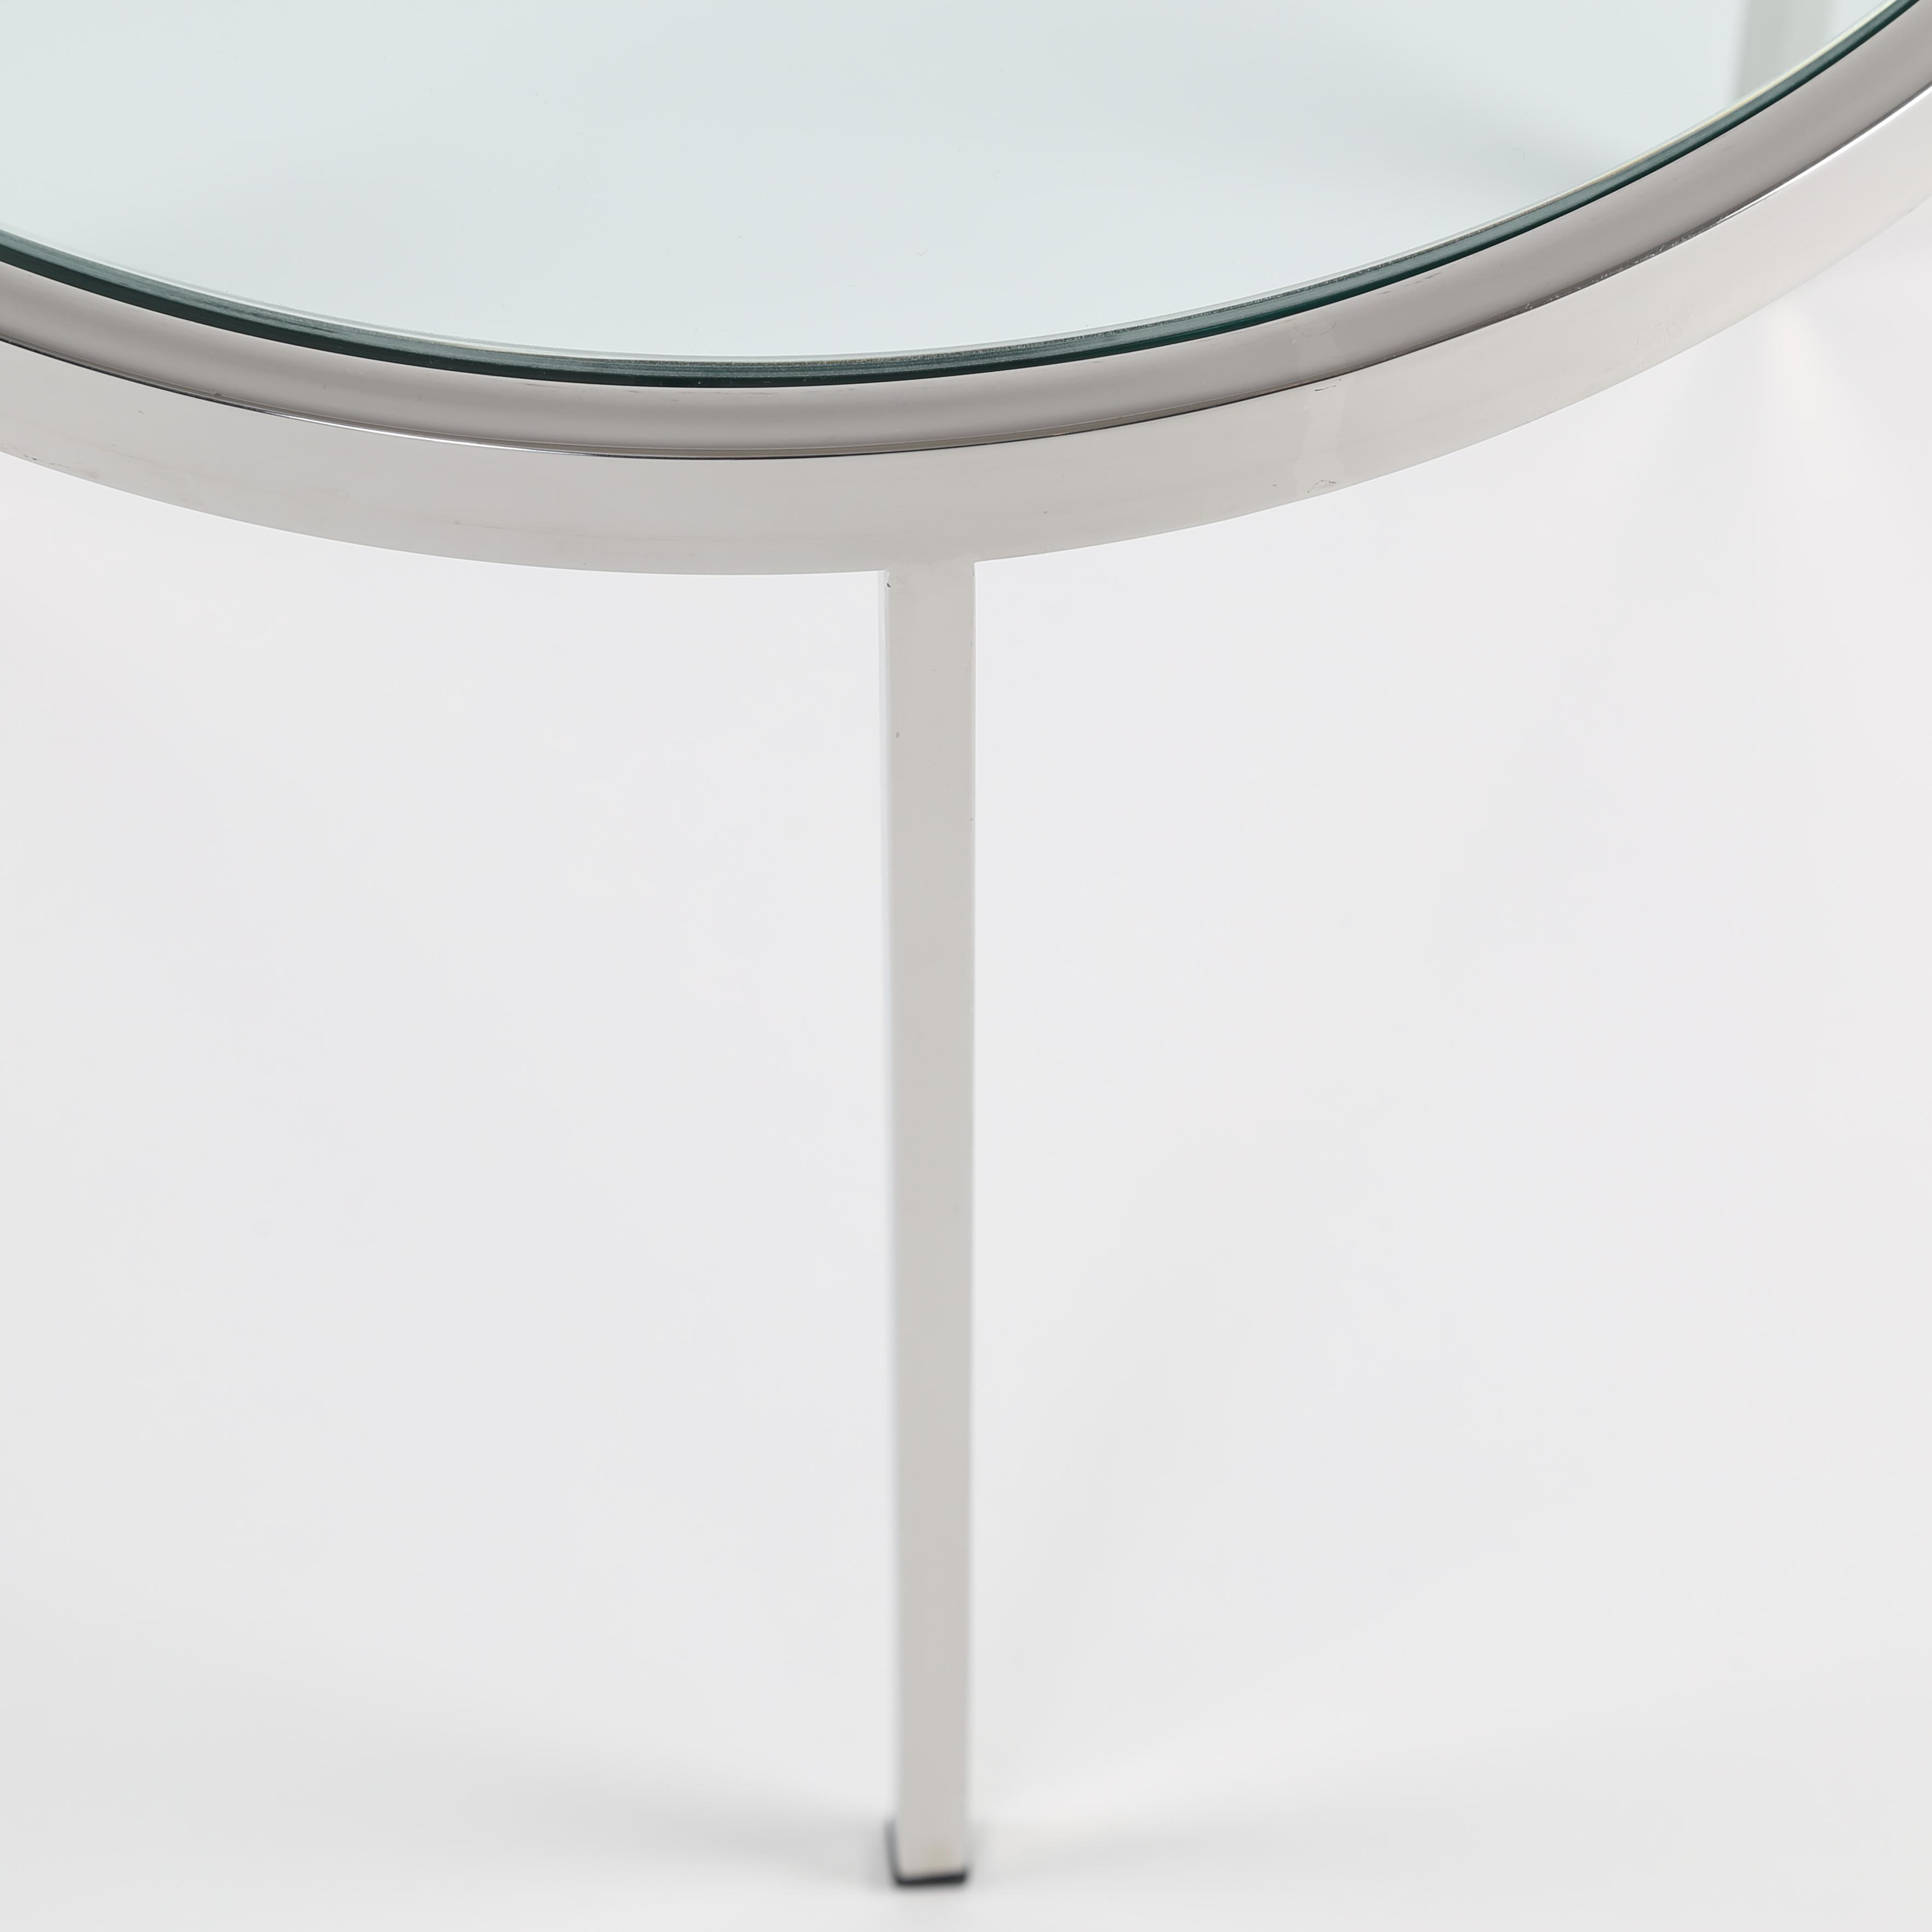 MILO BAUGHMAN ROUND CHROME SIDE TABLE WITH INSET GLASS TOP, CIRCA 1970S    Image 8